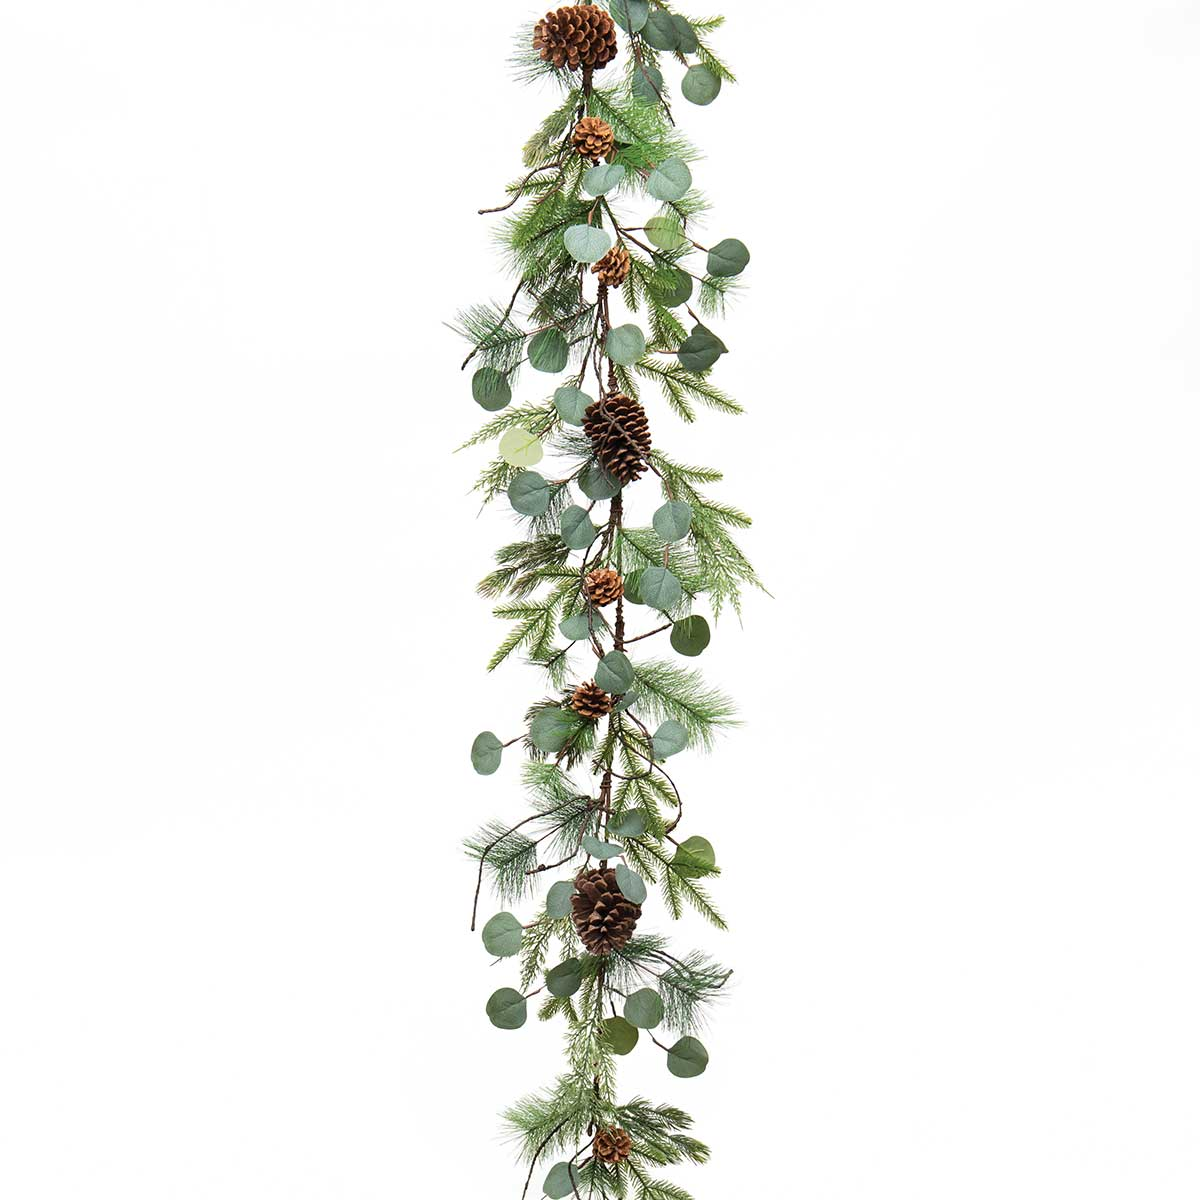 FRESH CUT PINE GARLAND WITH EUCALYPTUS, FAUX TWIGS AND